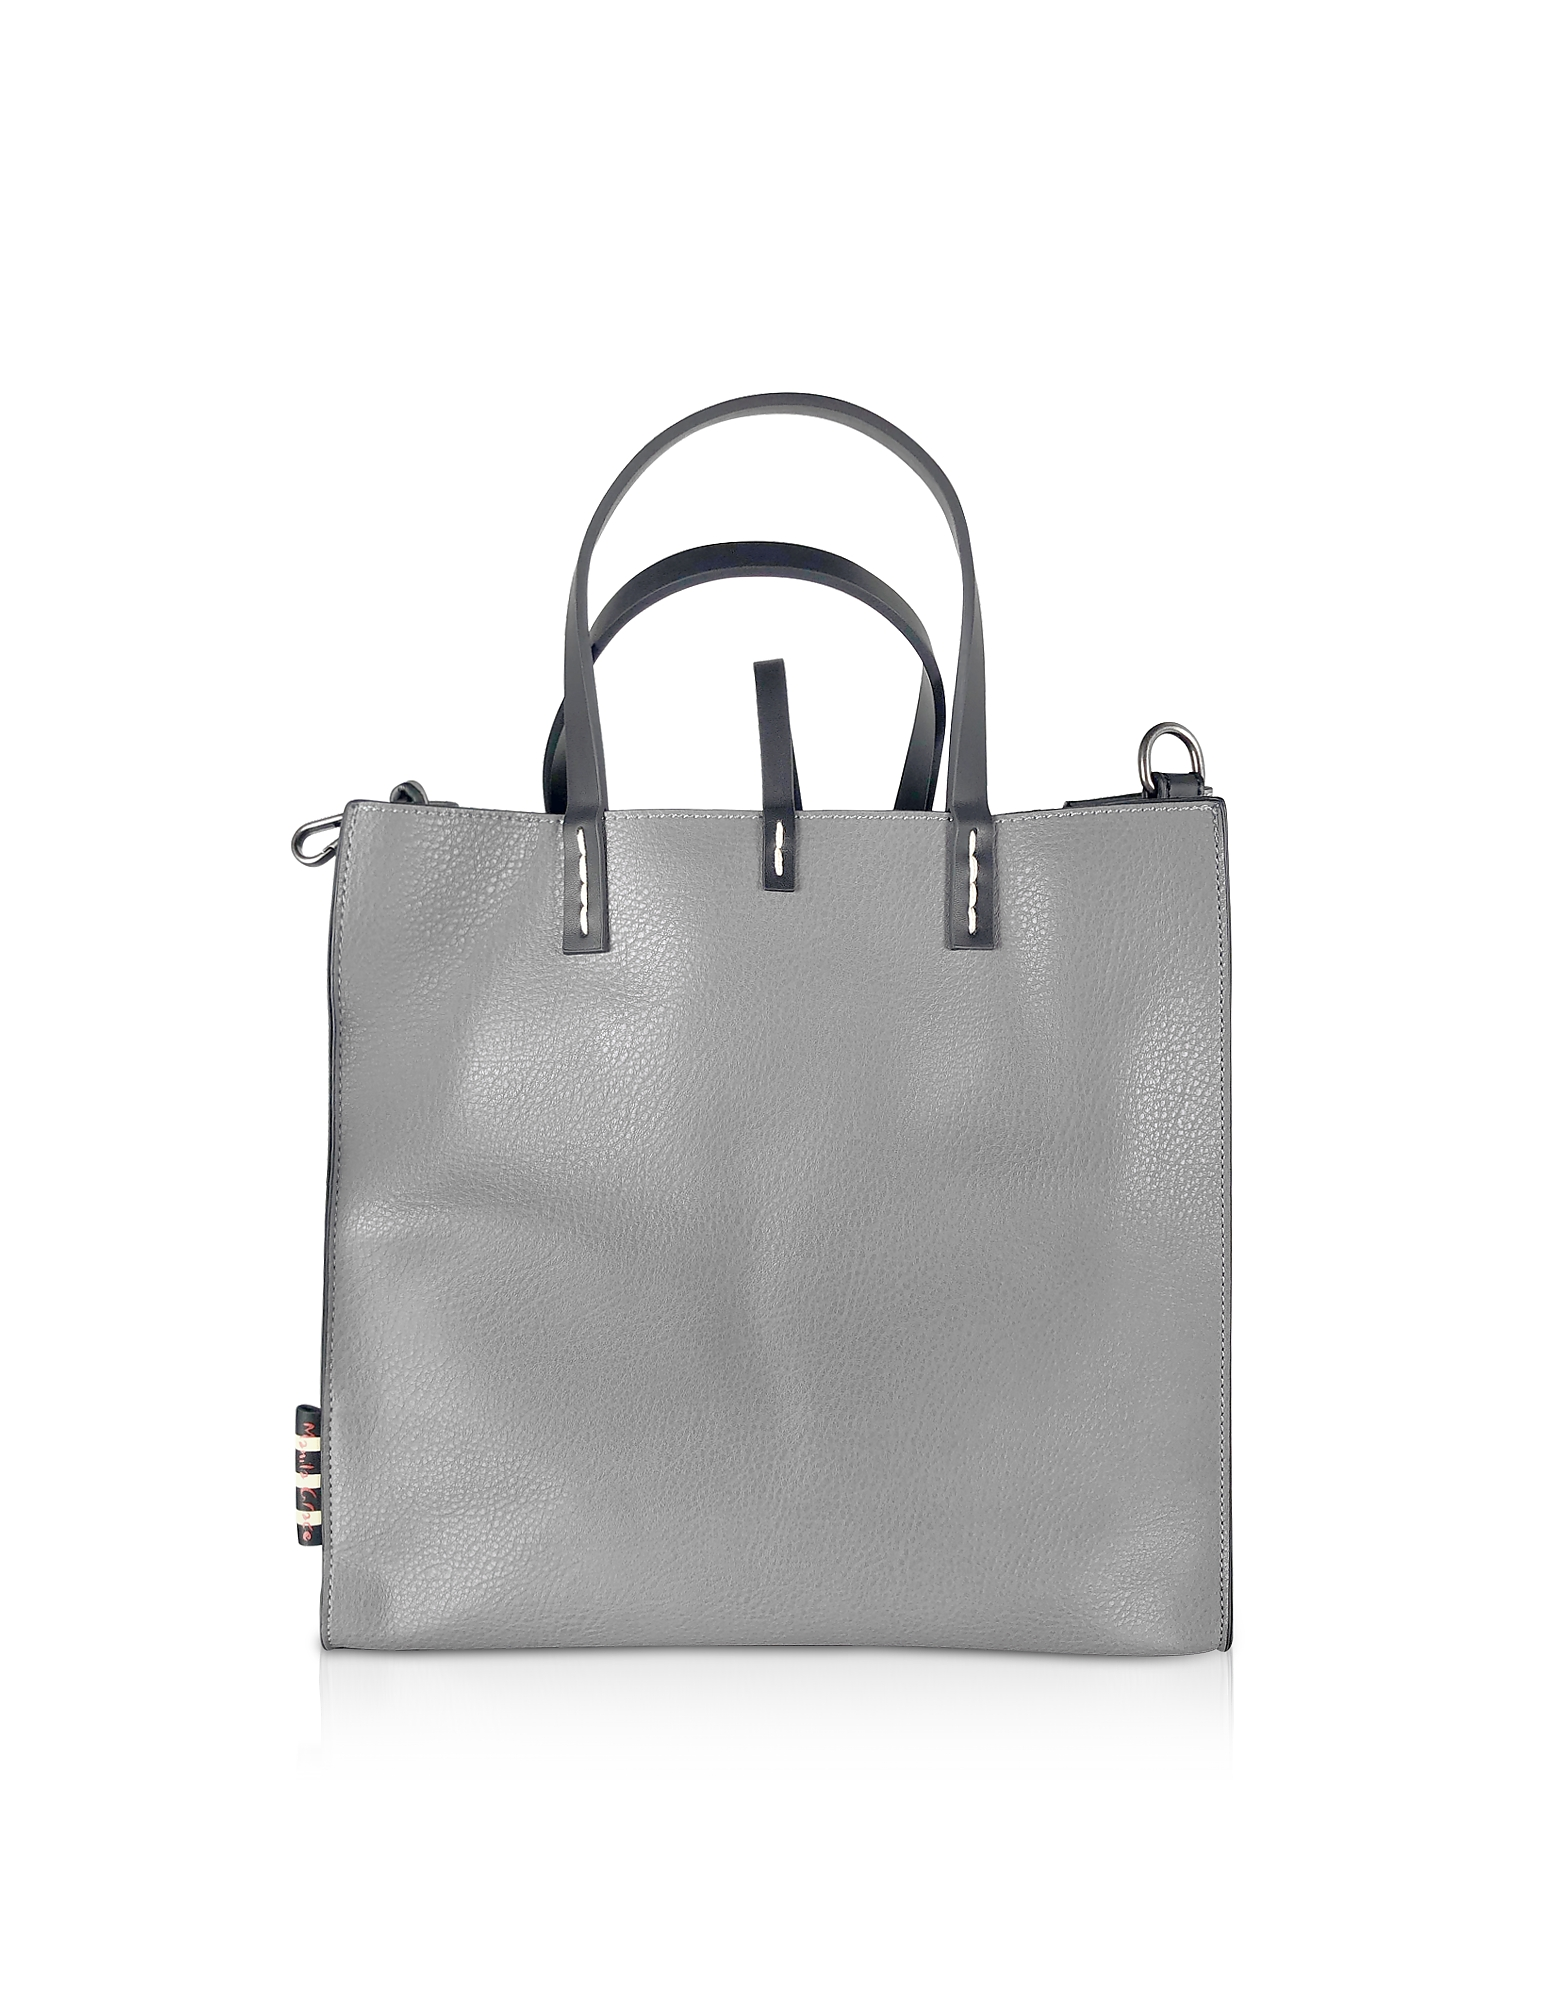 Manila Grace Designer Handbags, Cement Gray Felicia Tote Bag